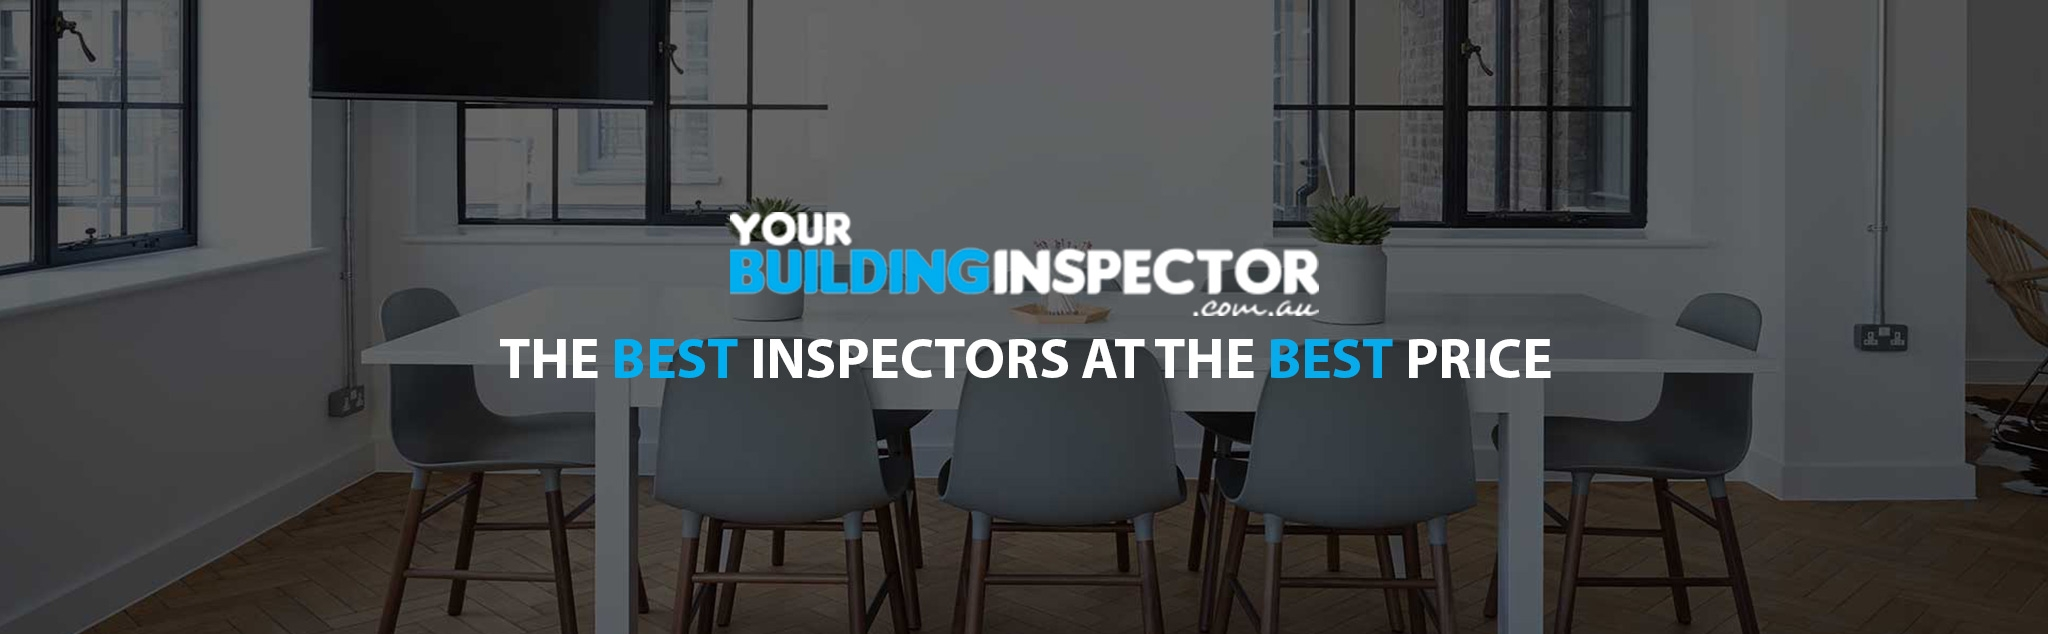 Building and Pest Inspector Gold Coast (@ybigoldcoast) Cover Image